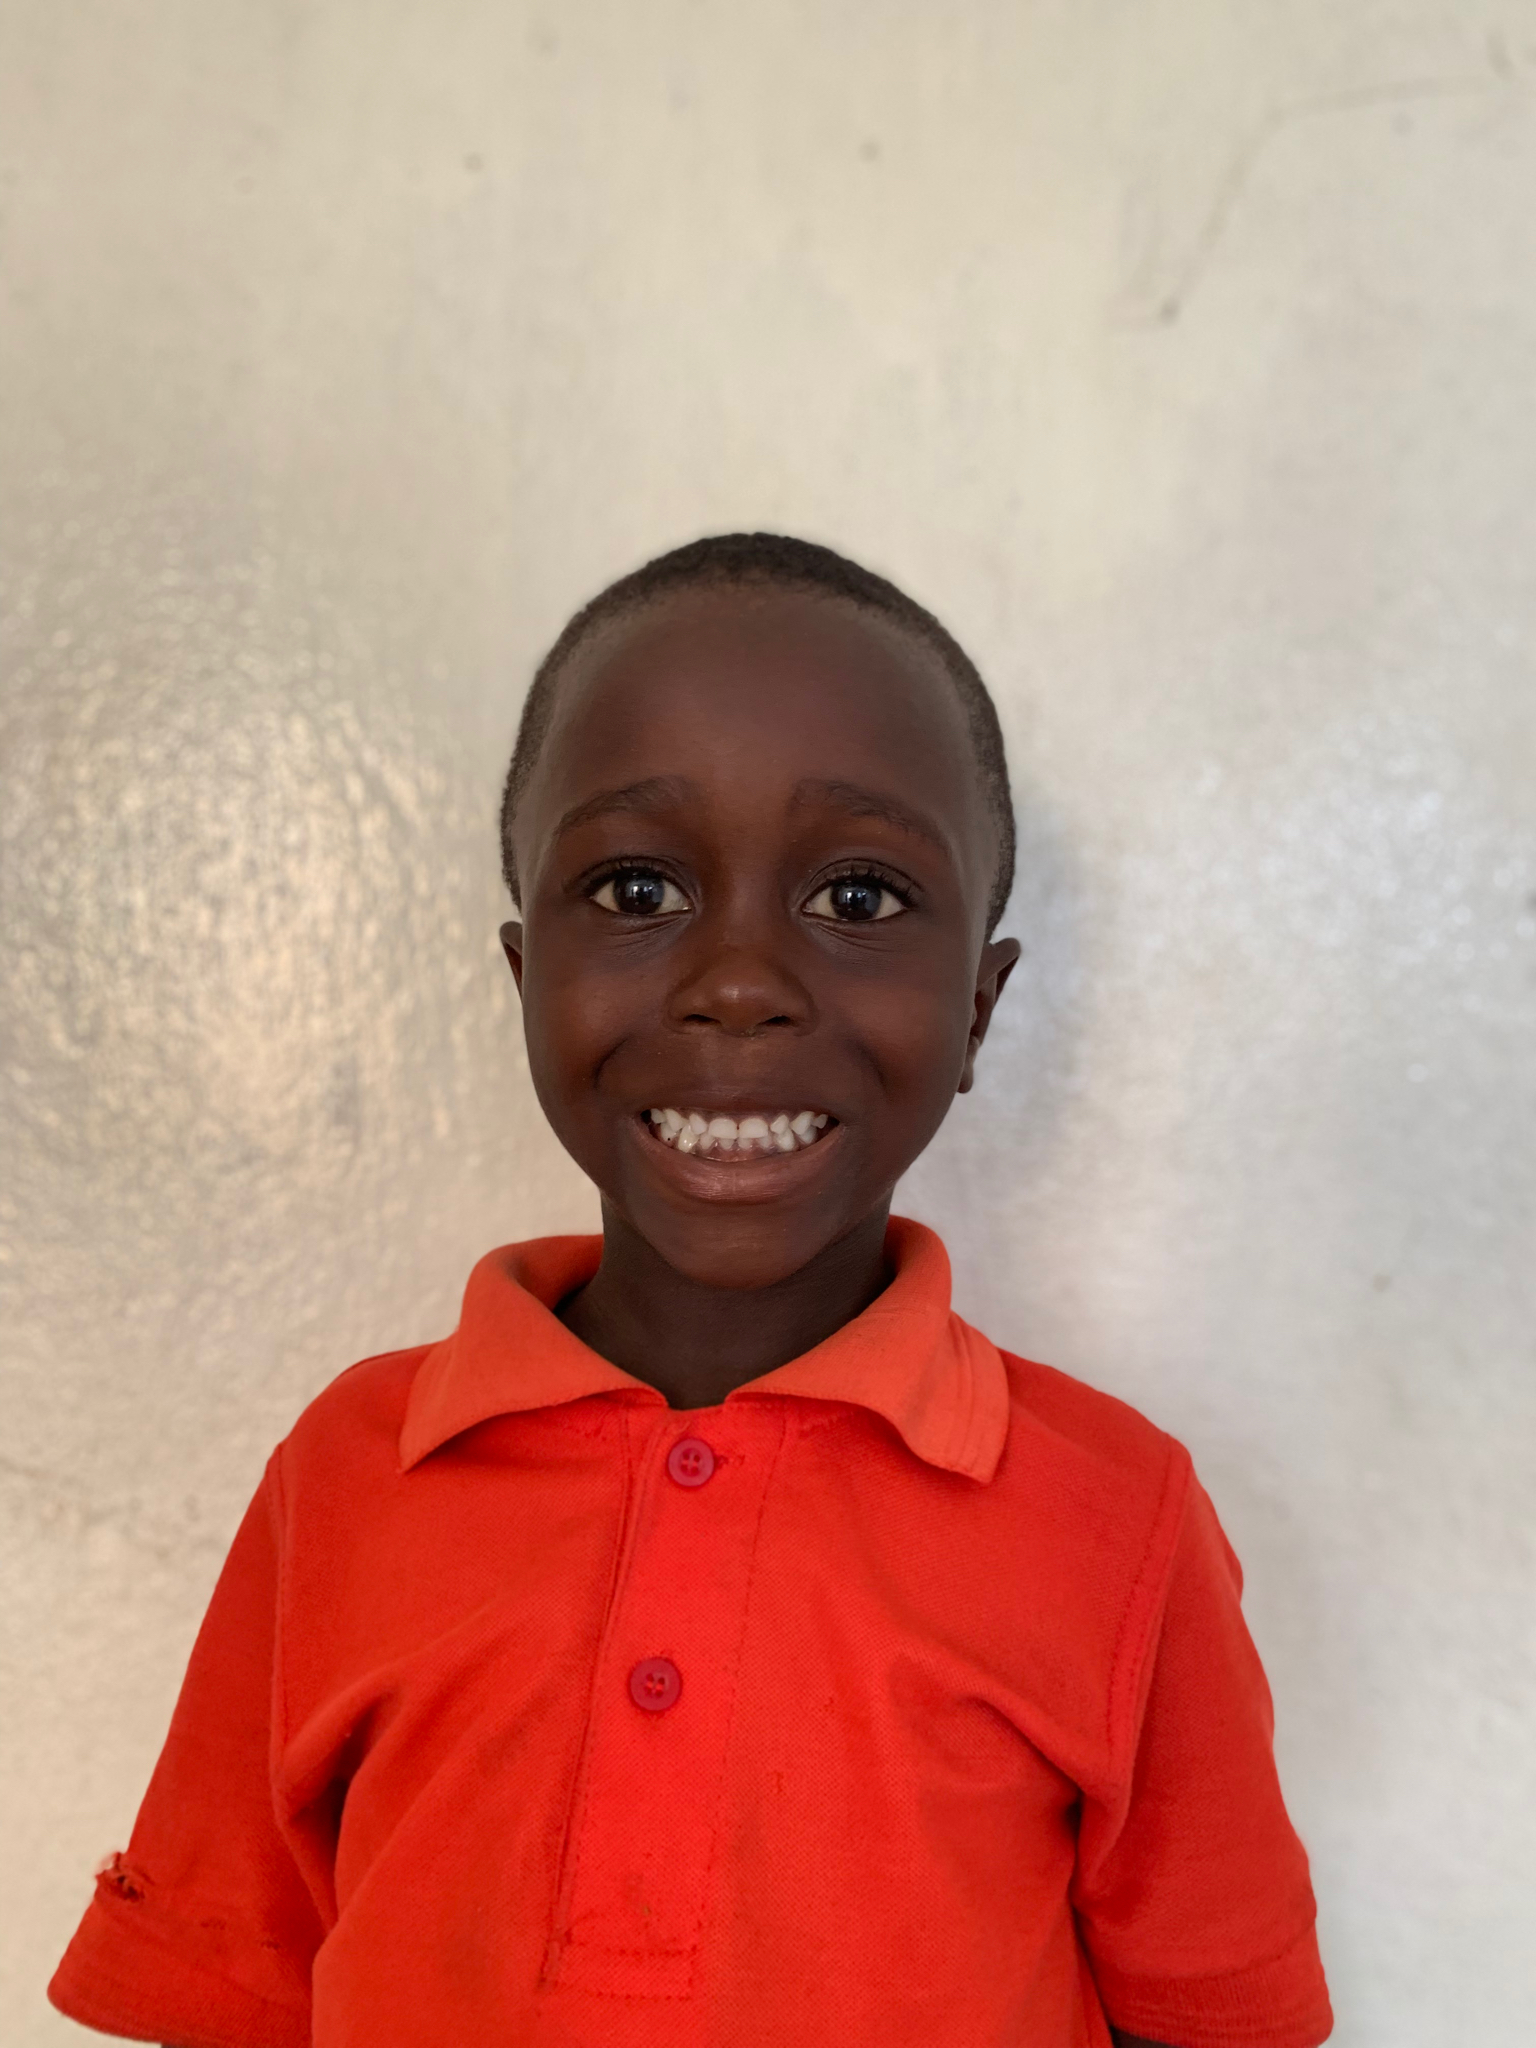 Hello, my name is Isaac Roberts. - Isaac is a 4-year-old boy.Isaac lives with his parents, brother, and sister; and loves alligators, drawing, and the color orange.